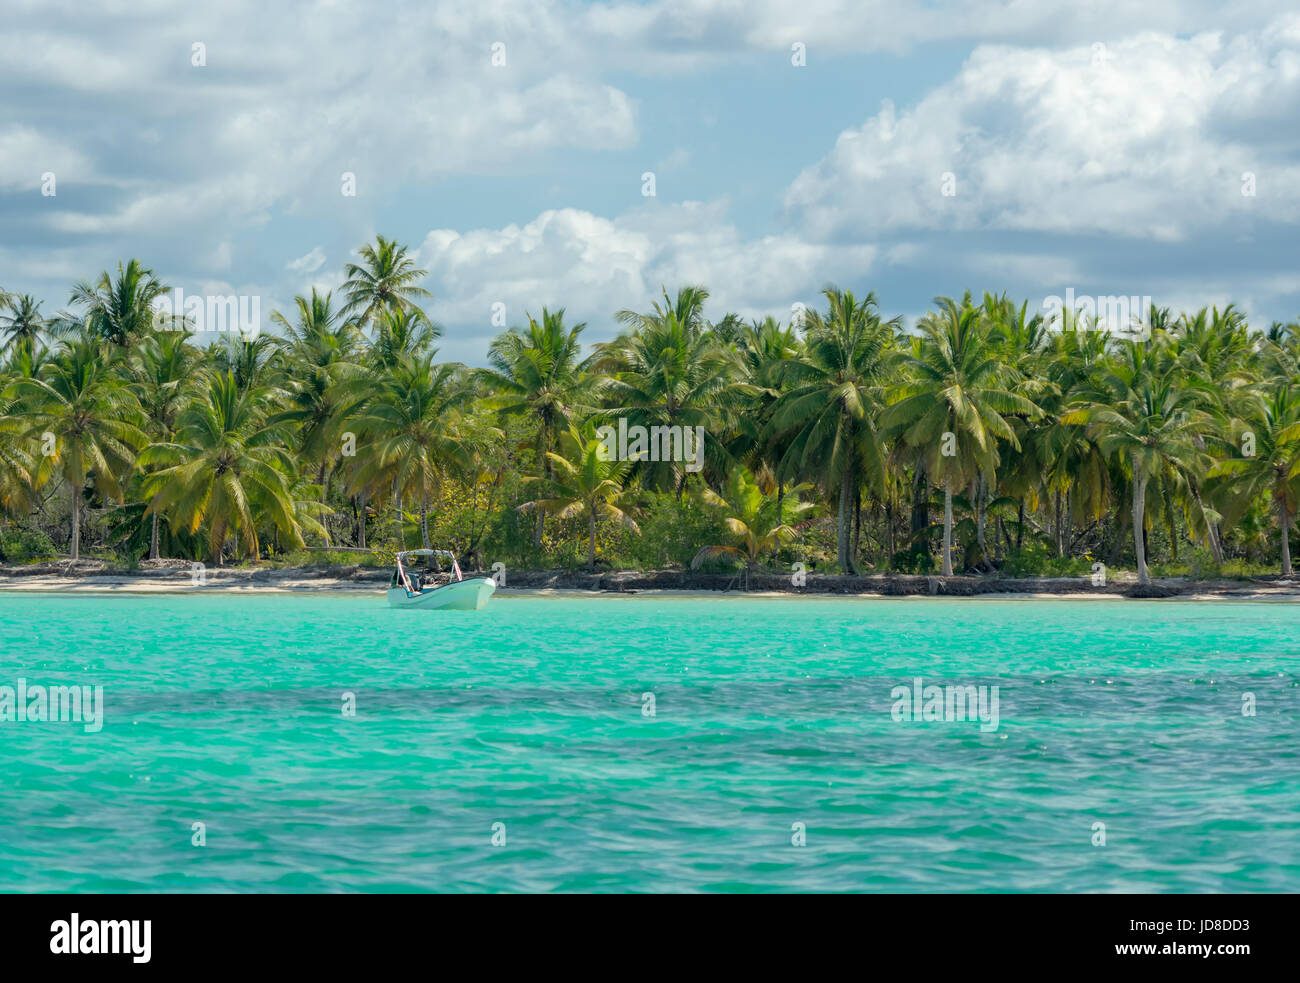 Natural pool at Saona Island on the Caribbean Sea in the Dominican Republic. - Stock Image